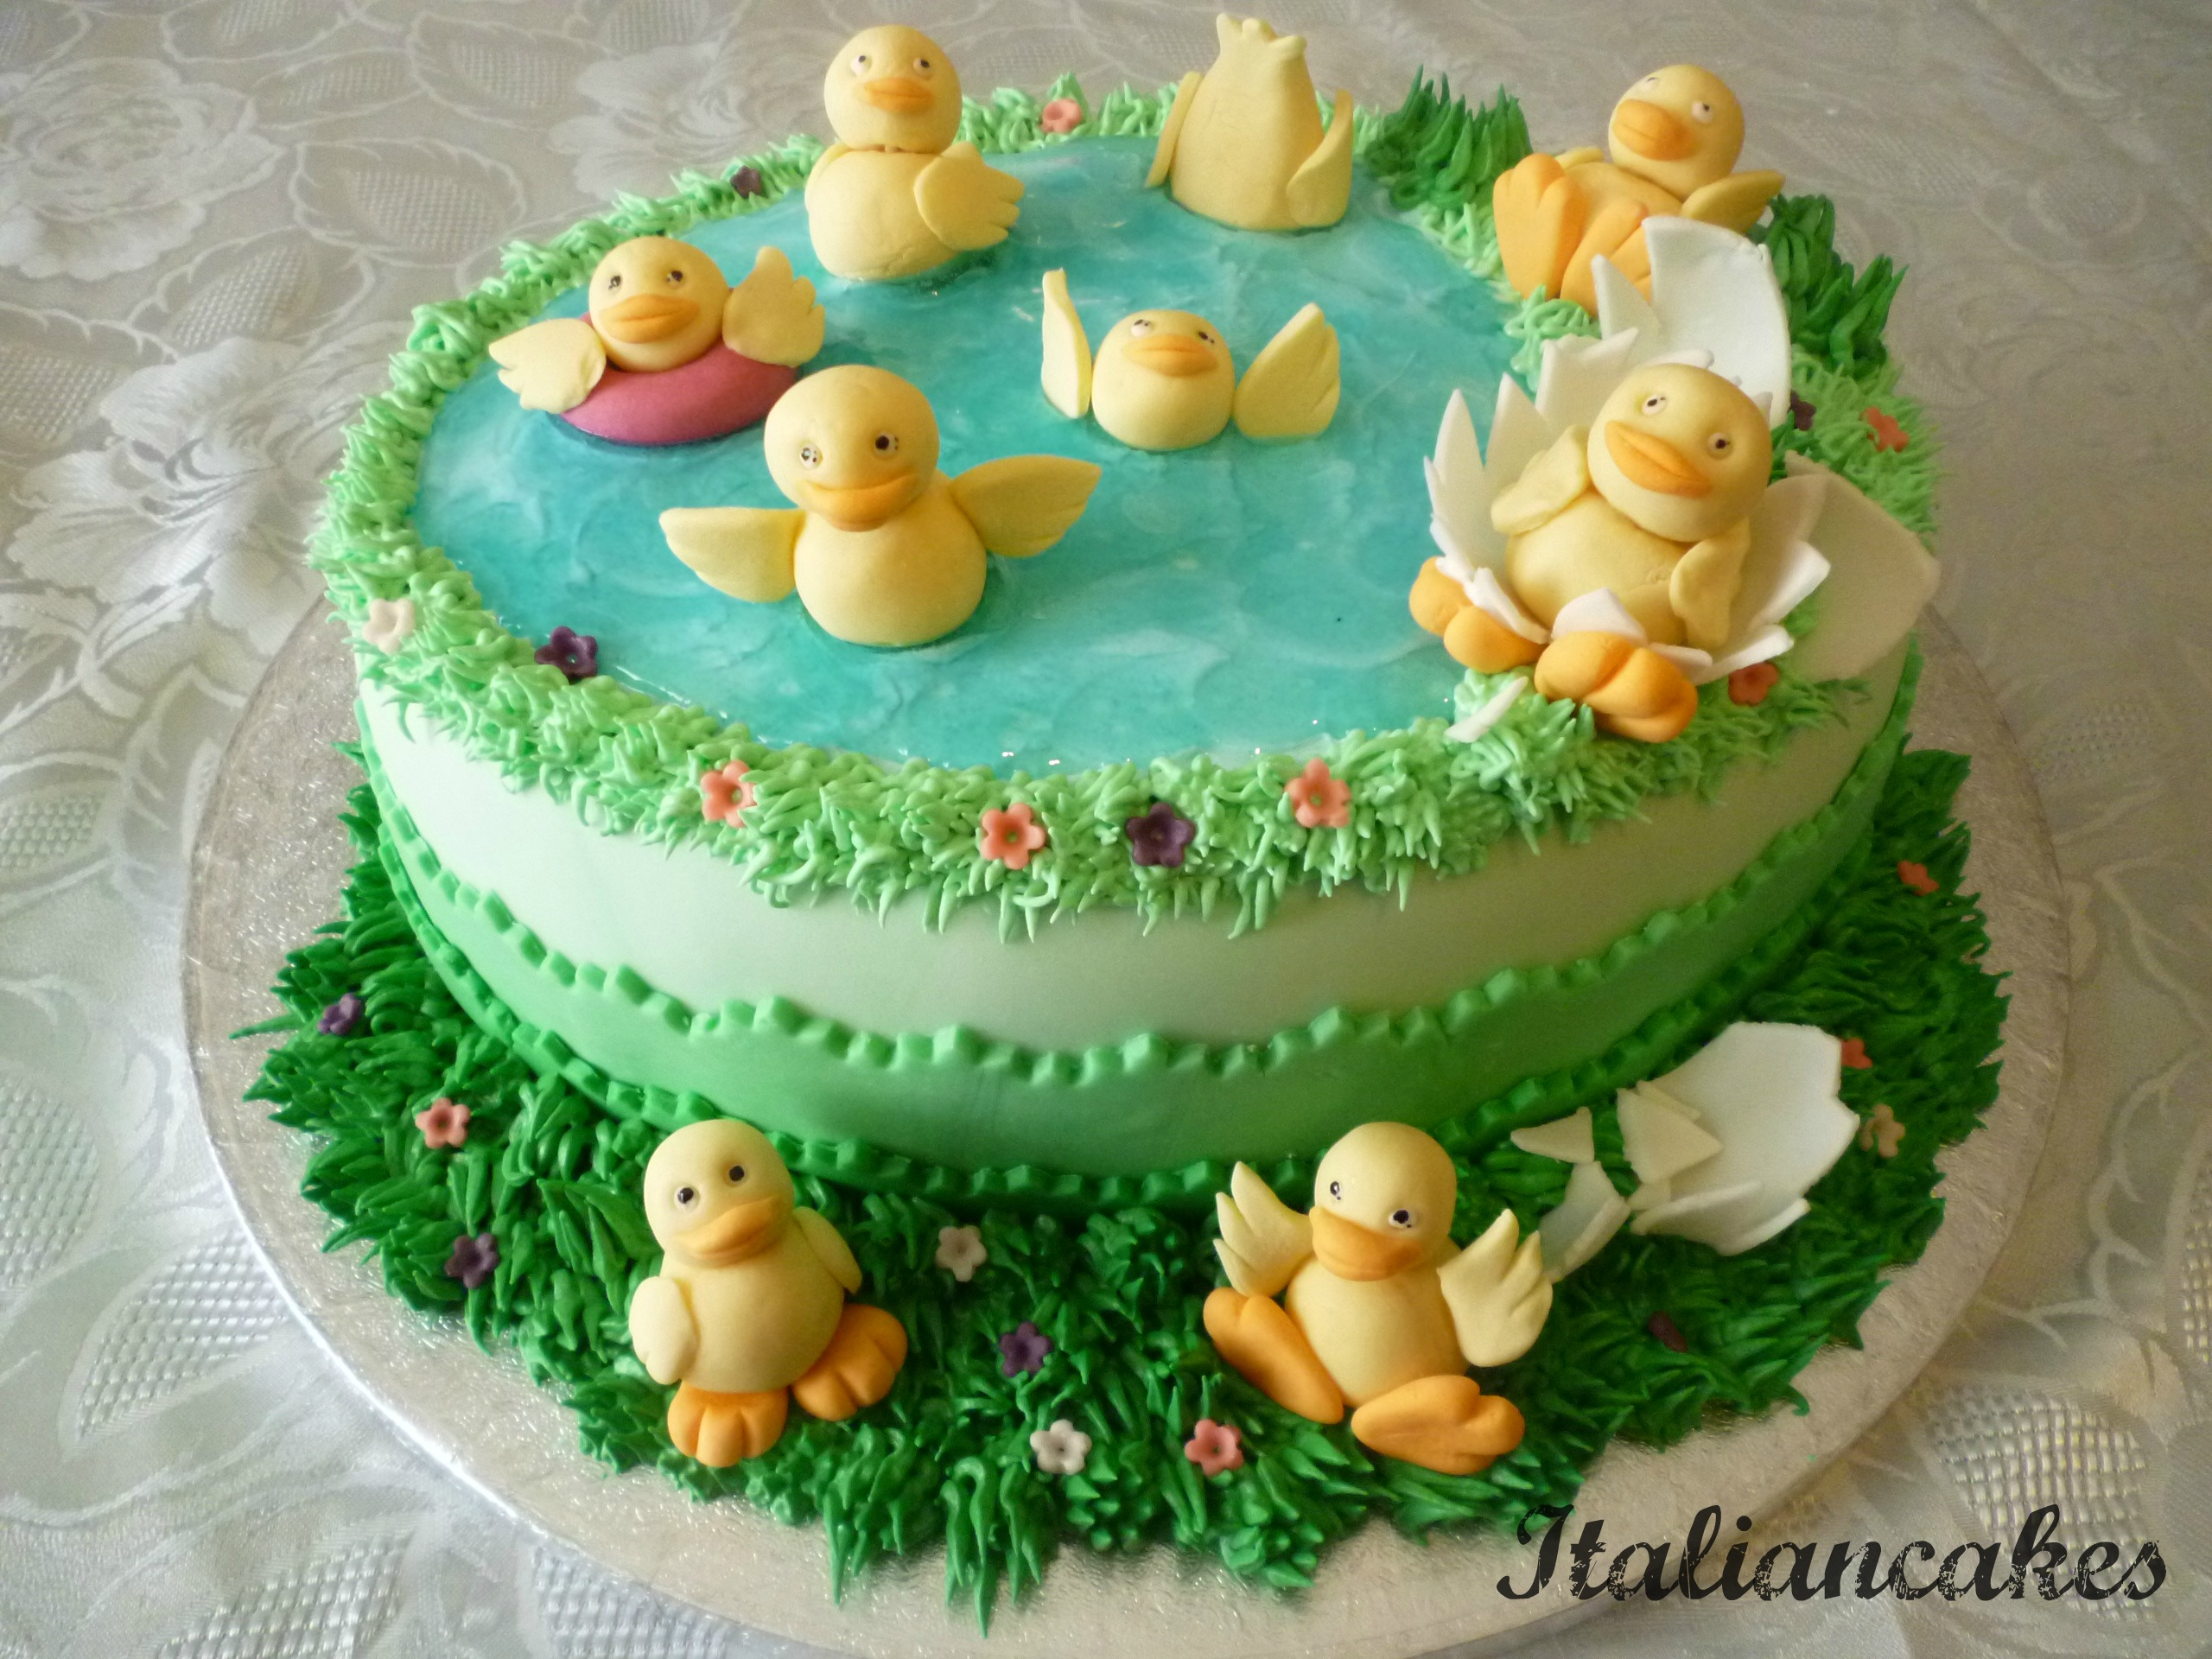 Decorate a birthday cake with ducks   ItalianCakes